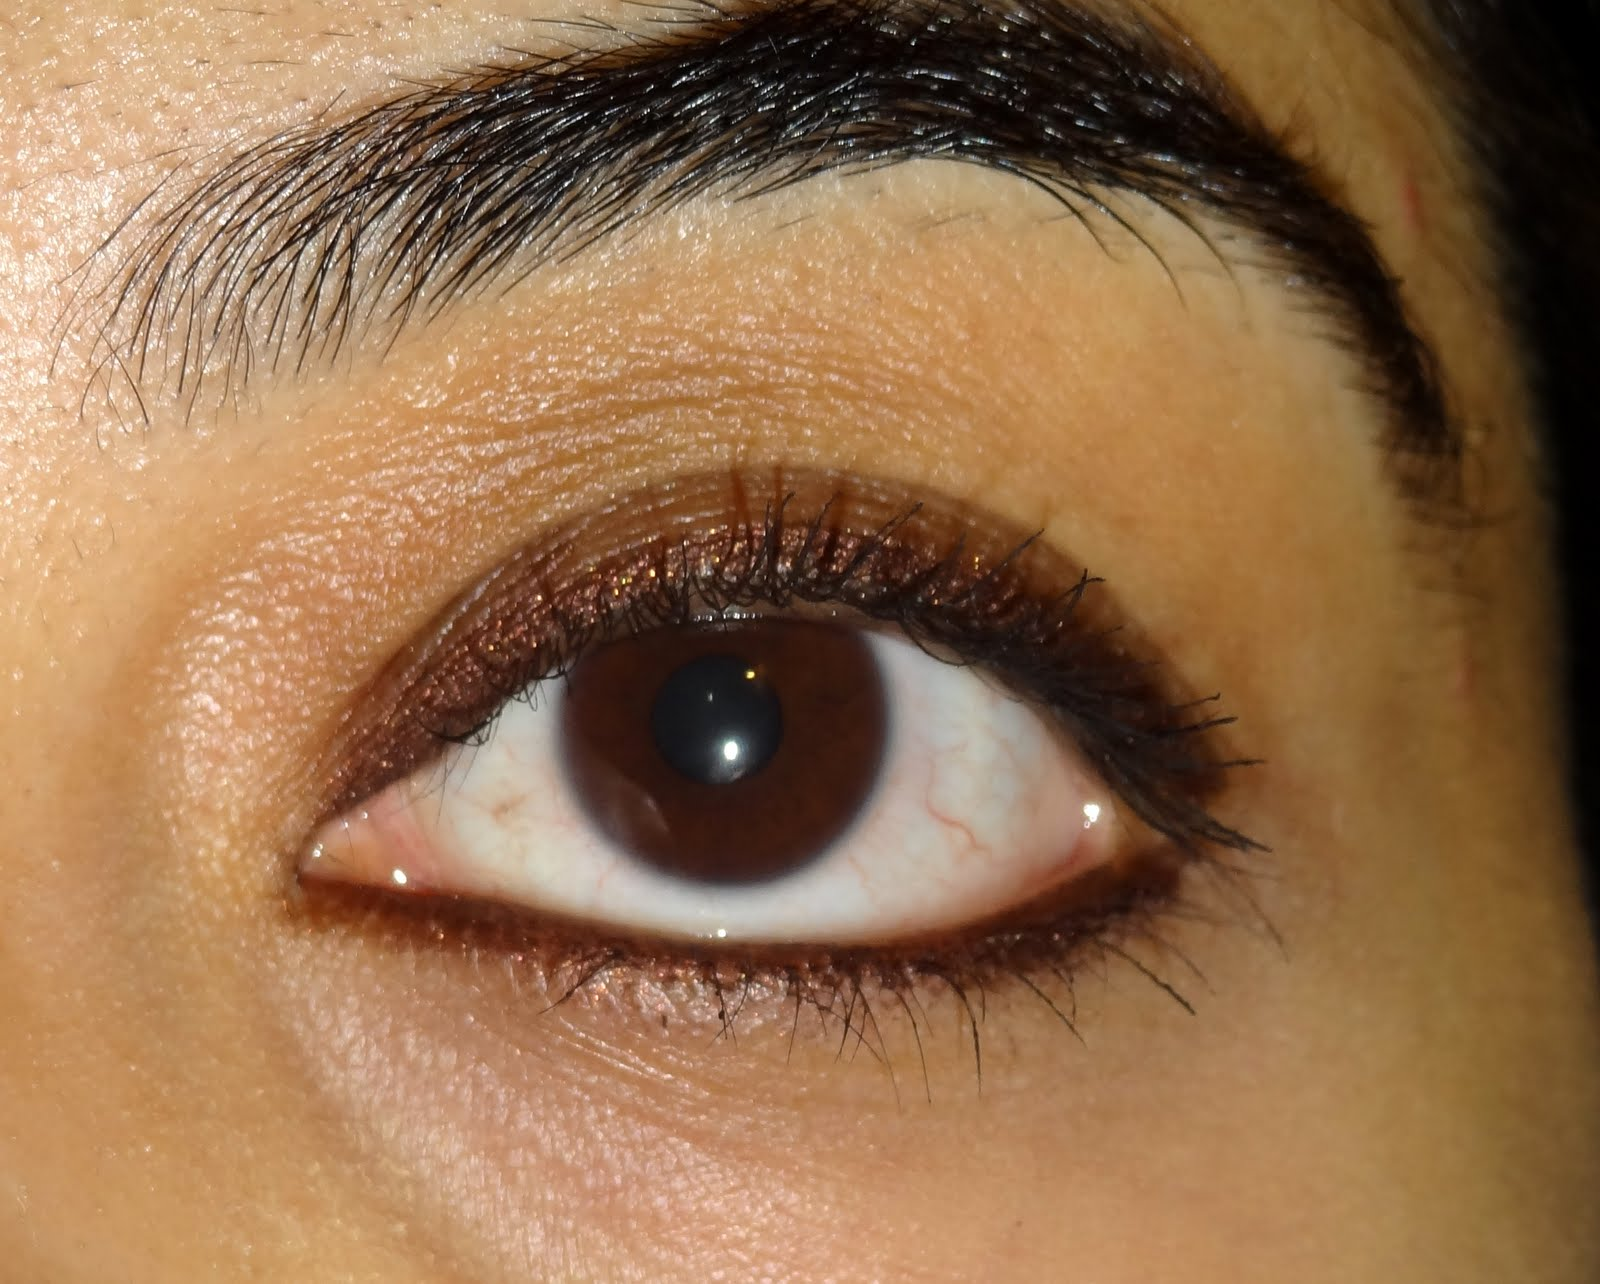 Maybelline Hyper Curl Mascara Review Peachesandblush A Scary Photo With